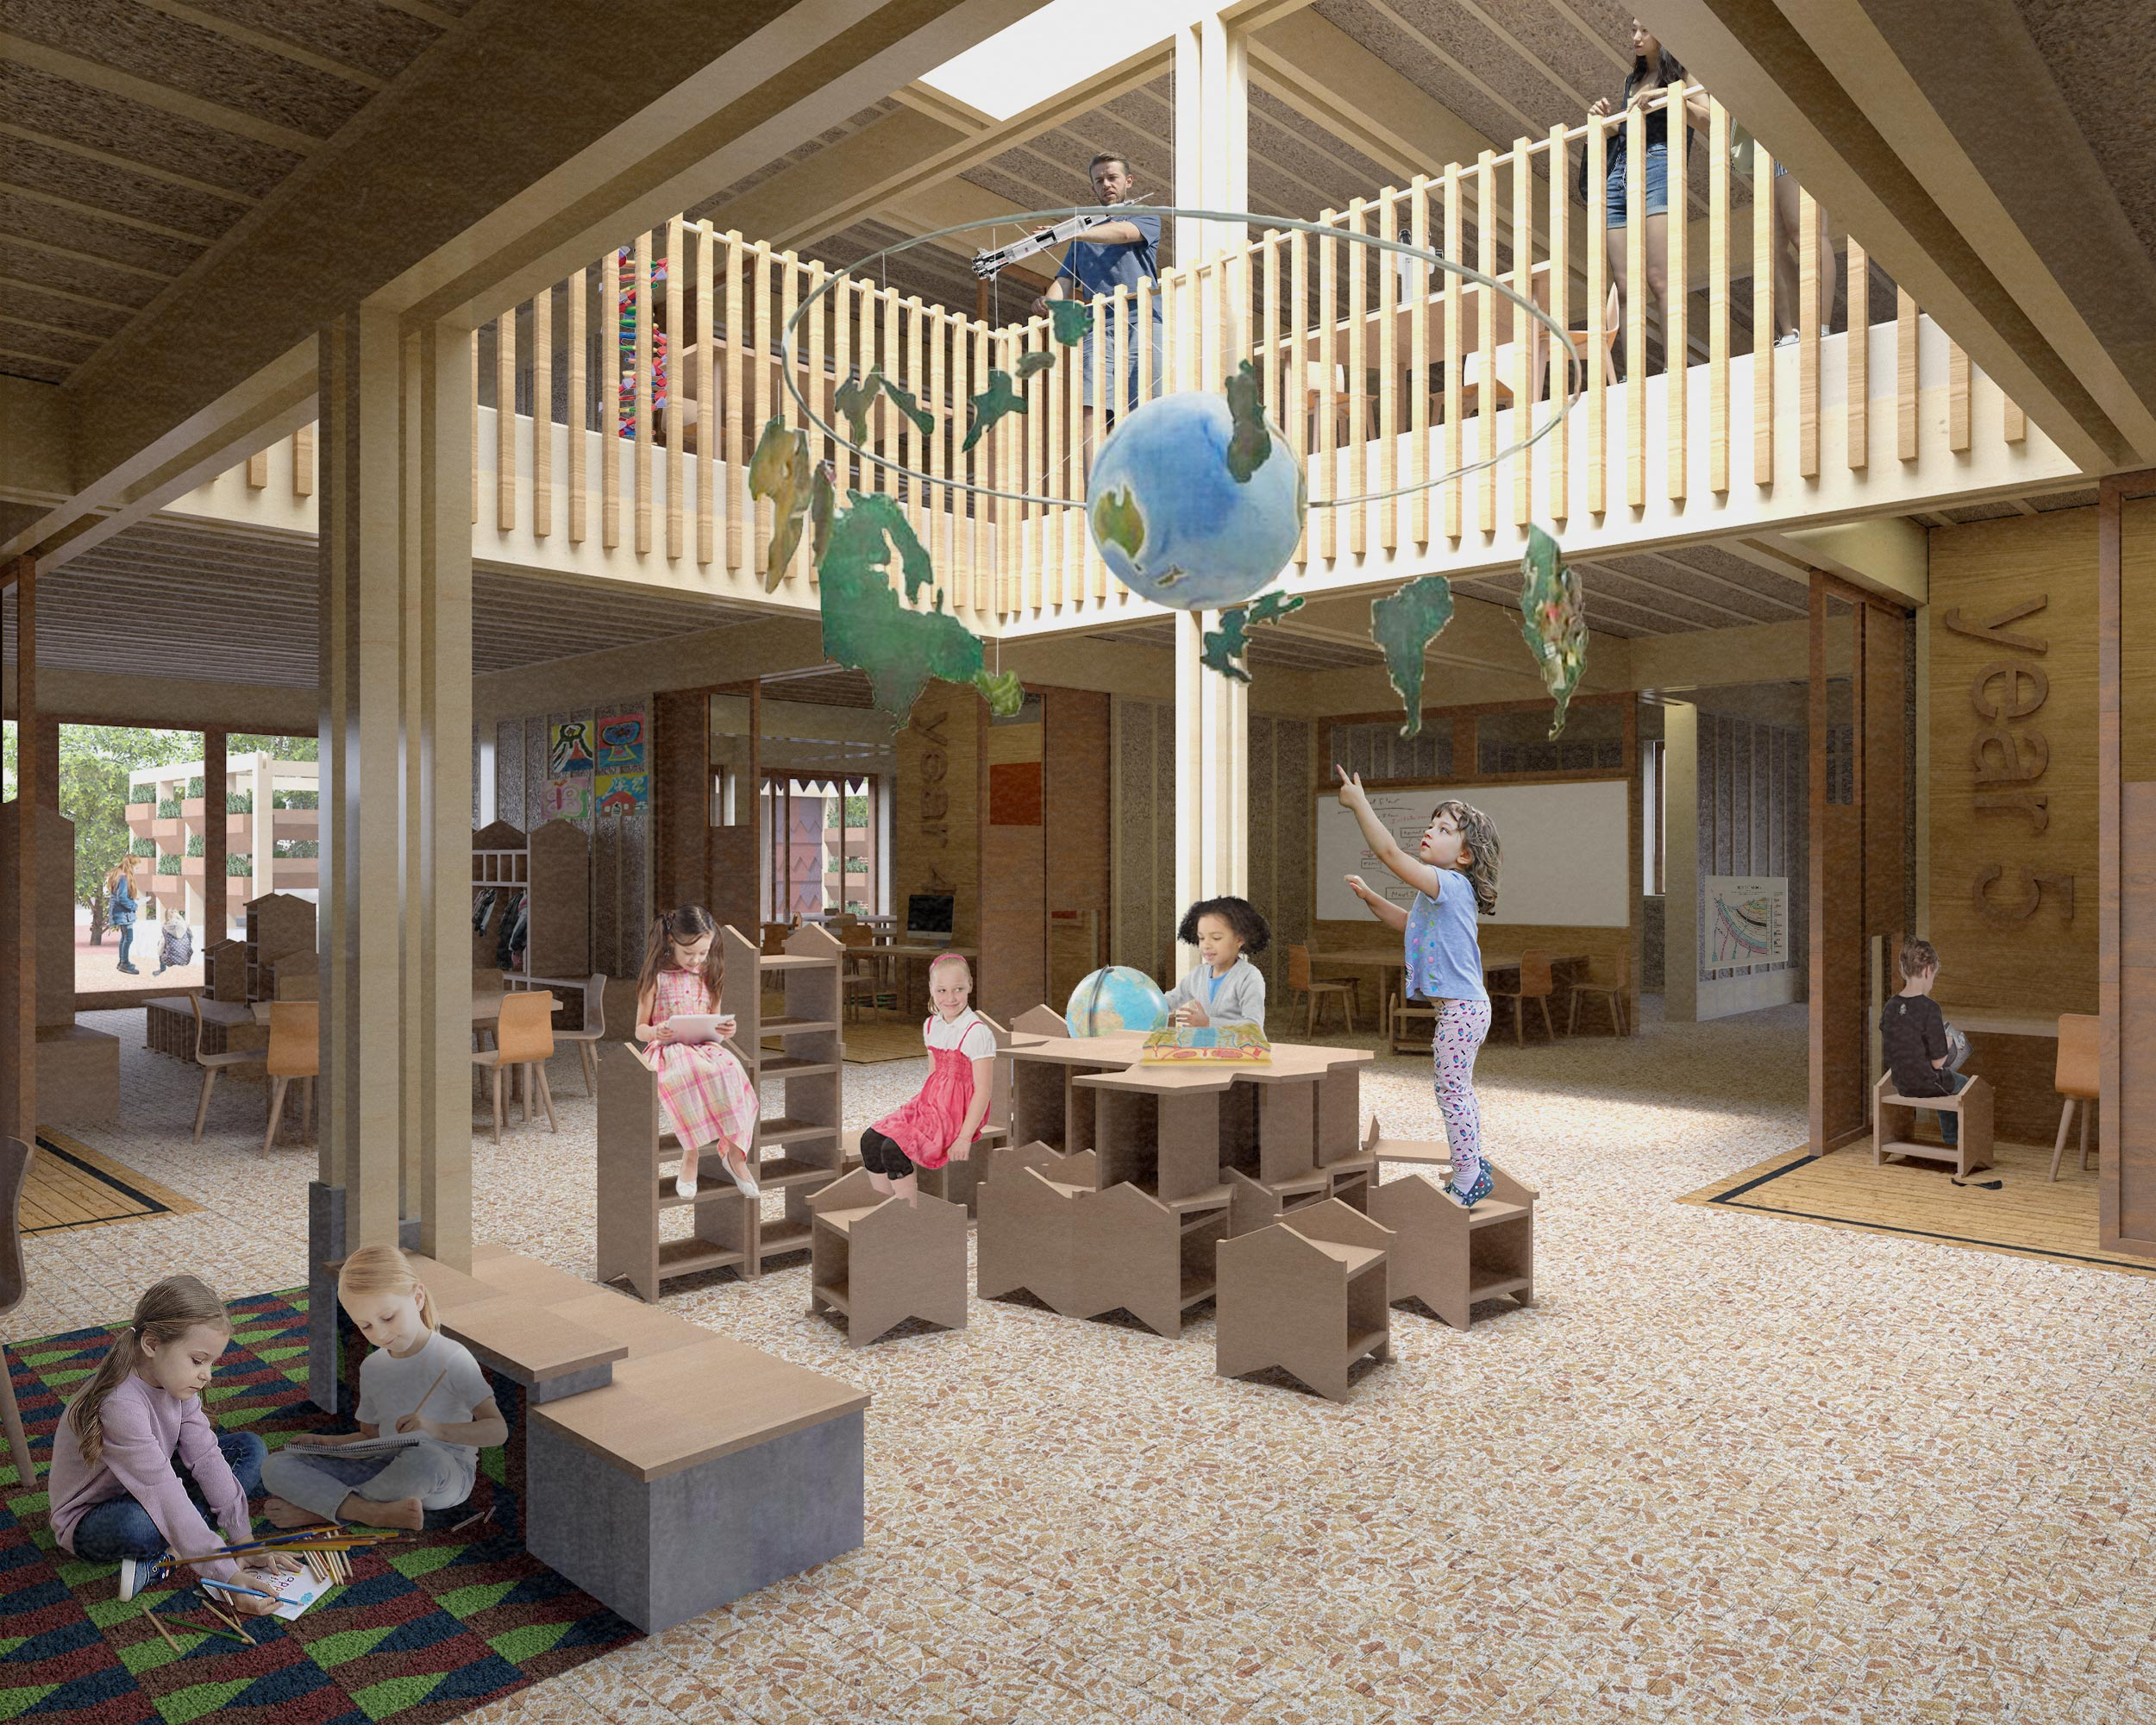 Shared, flexible learning spaces, interaction between primary and secondary students